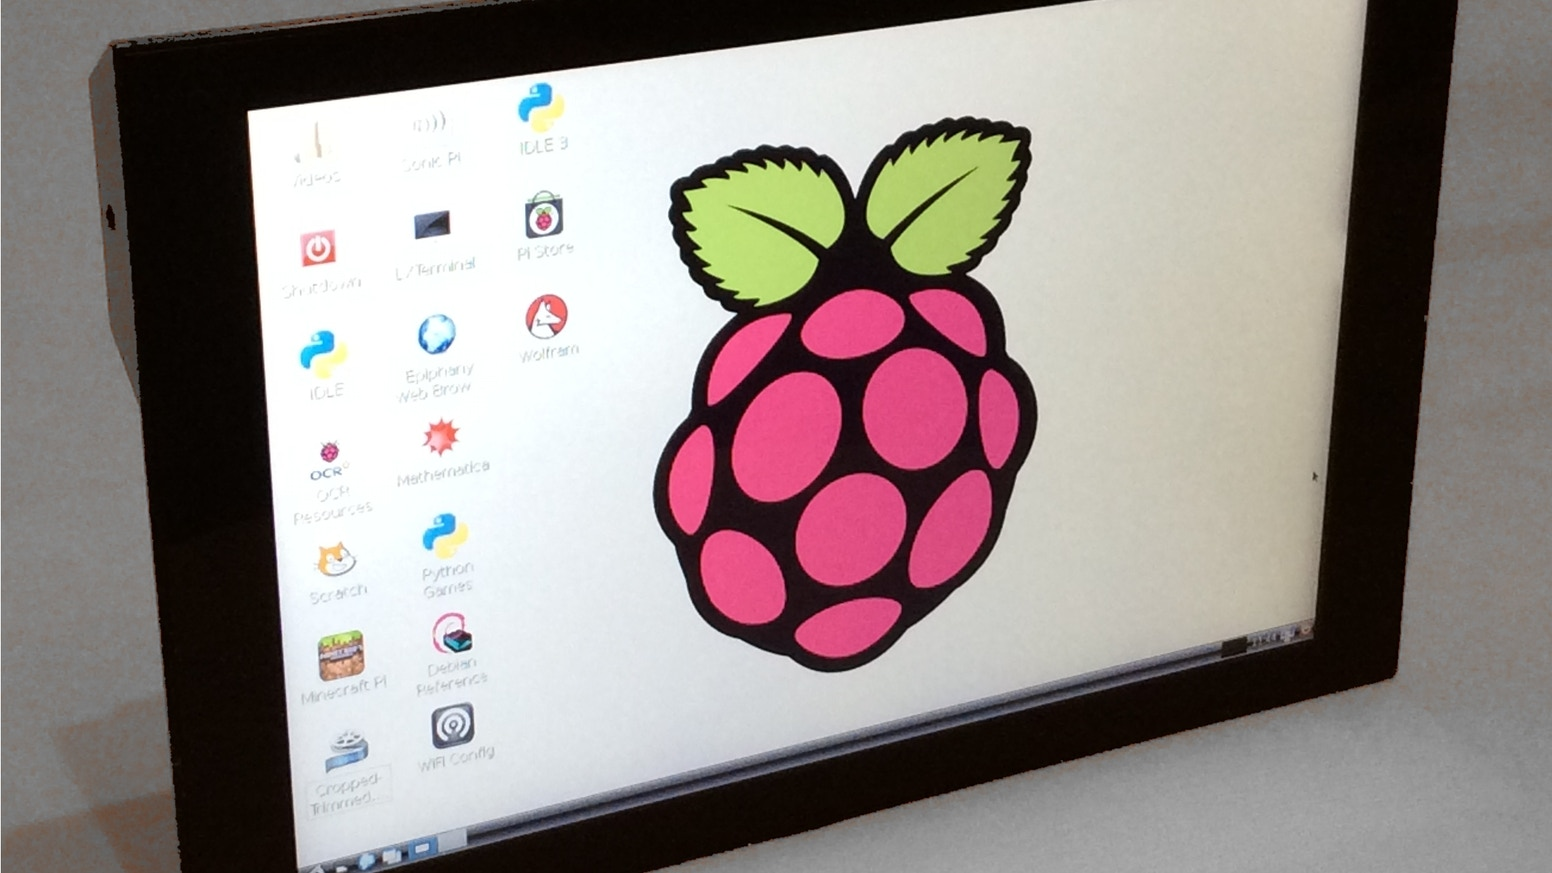 Pitouch 10 Touchscreen Monitor For Raspberry Pi Mac Pc By Psi Learn Python And Electronics With Minecraft Edition